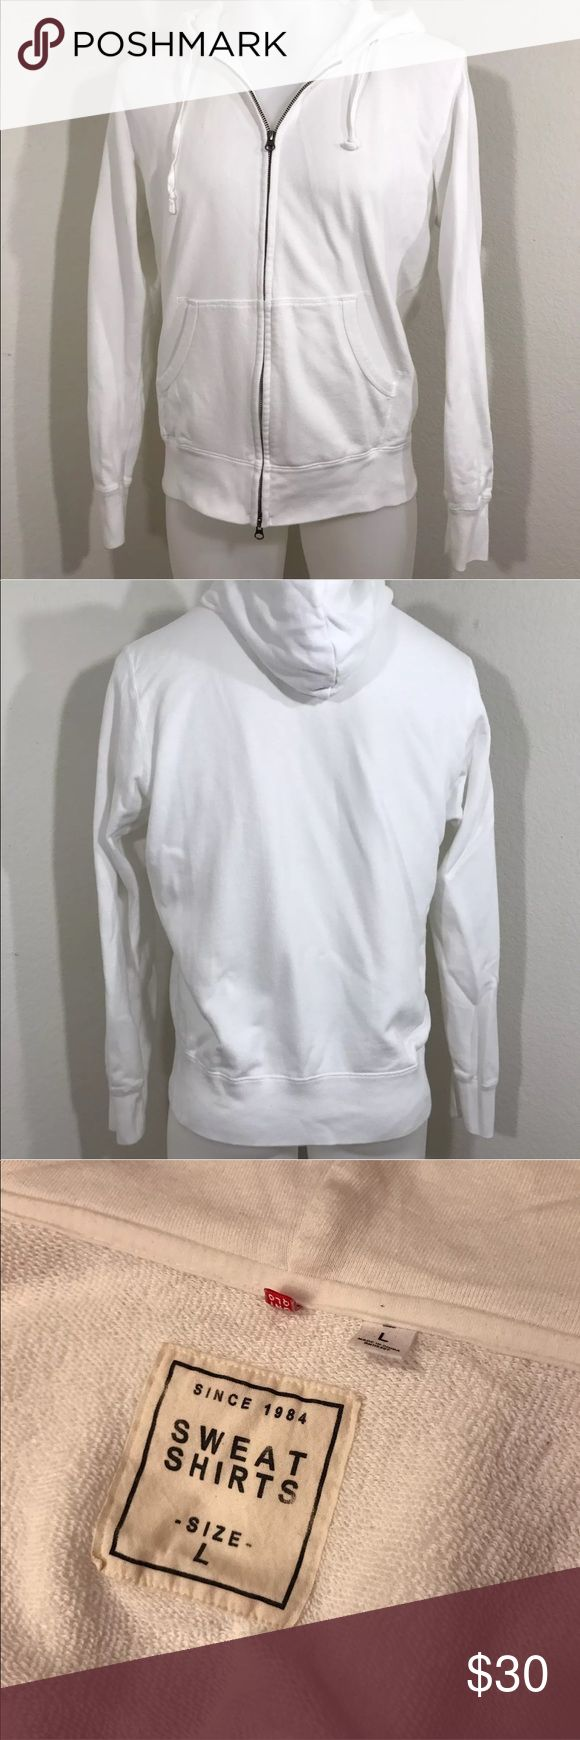 """White Uniqlo Hoodie Size Large White Uniqlo Hoodie Size Large  EUC - Please see photos as we do consider them to be a part of the description.  This item listed was purchased directly from John Barrowman of Doctor Who, Torchwood & Arrow fame from his garage sale in March 2017. These items all belonged to John Barrowman, and were used by John Barrowman.   Approximate measurements laying flat  Collar to shoulder 5""""  Shoulder to end of sleeve 27.5""""  Across chest pit to pit 25""""  Length shoulder…"""